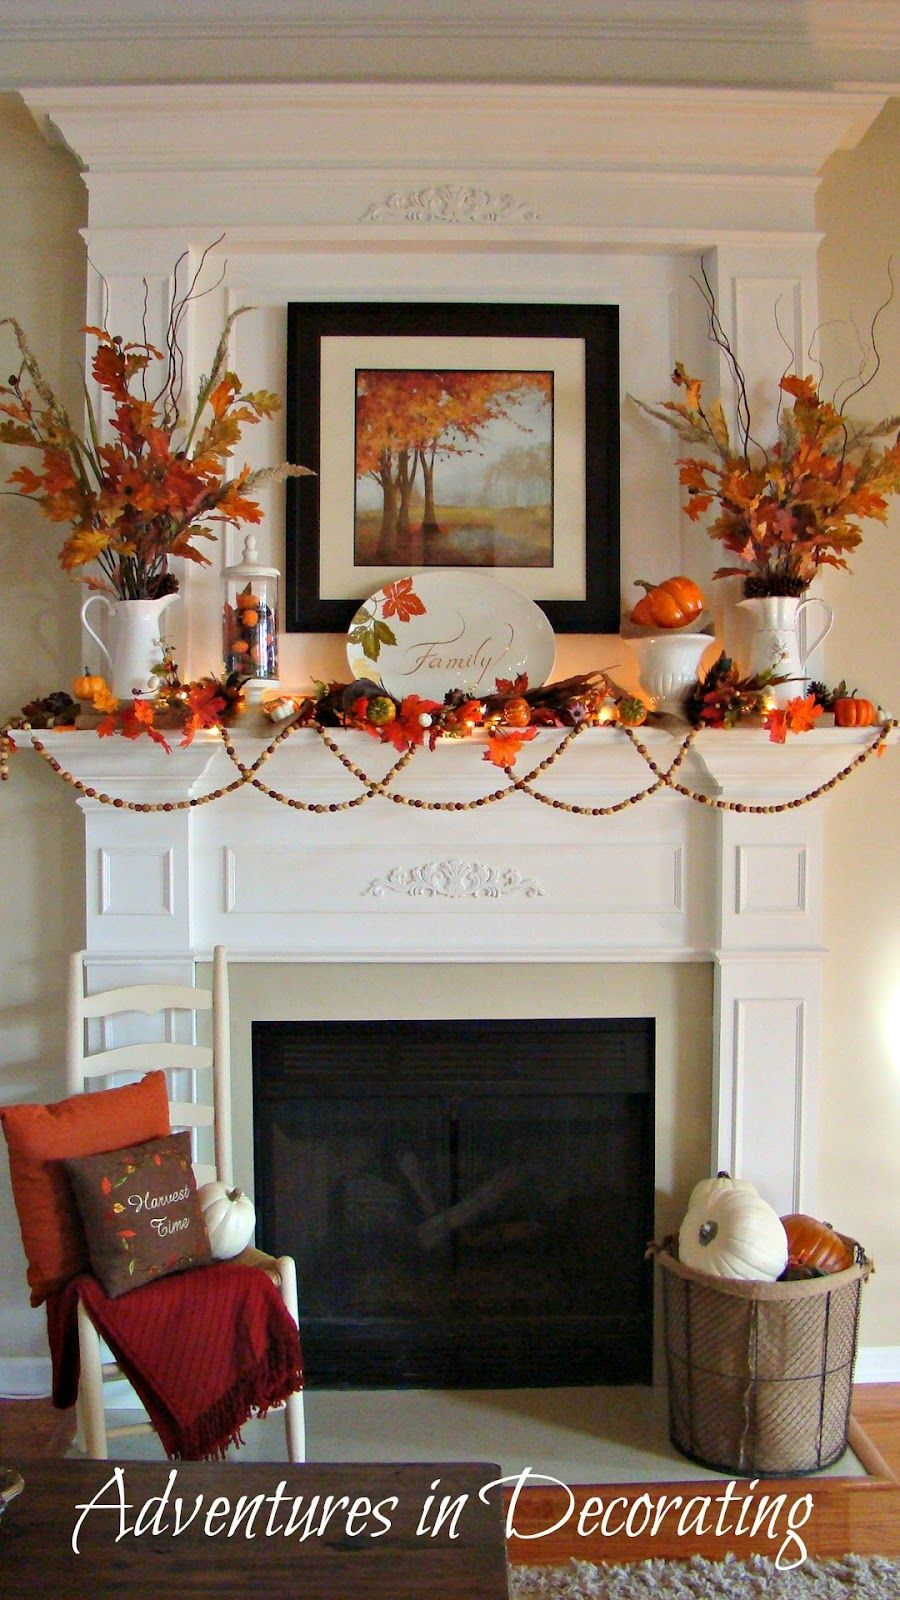 Give your fireplace a makeover this fall